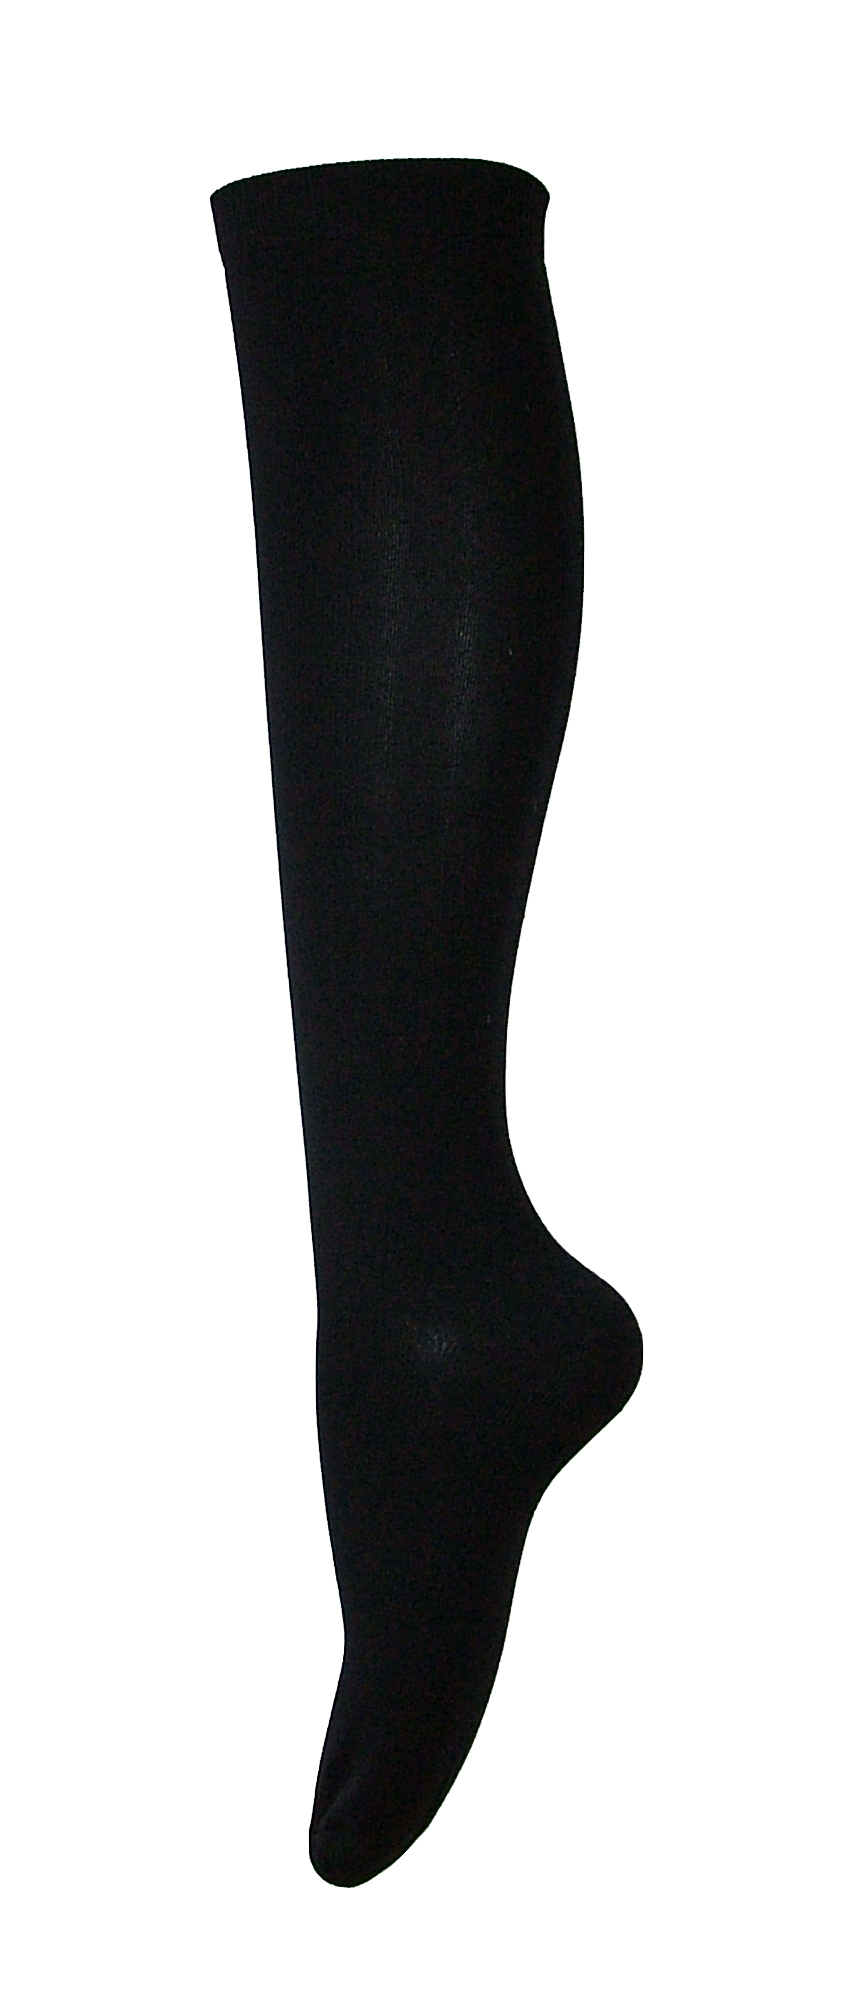 black-flight-sock